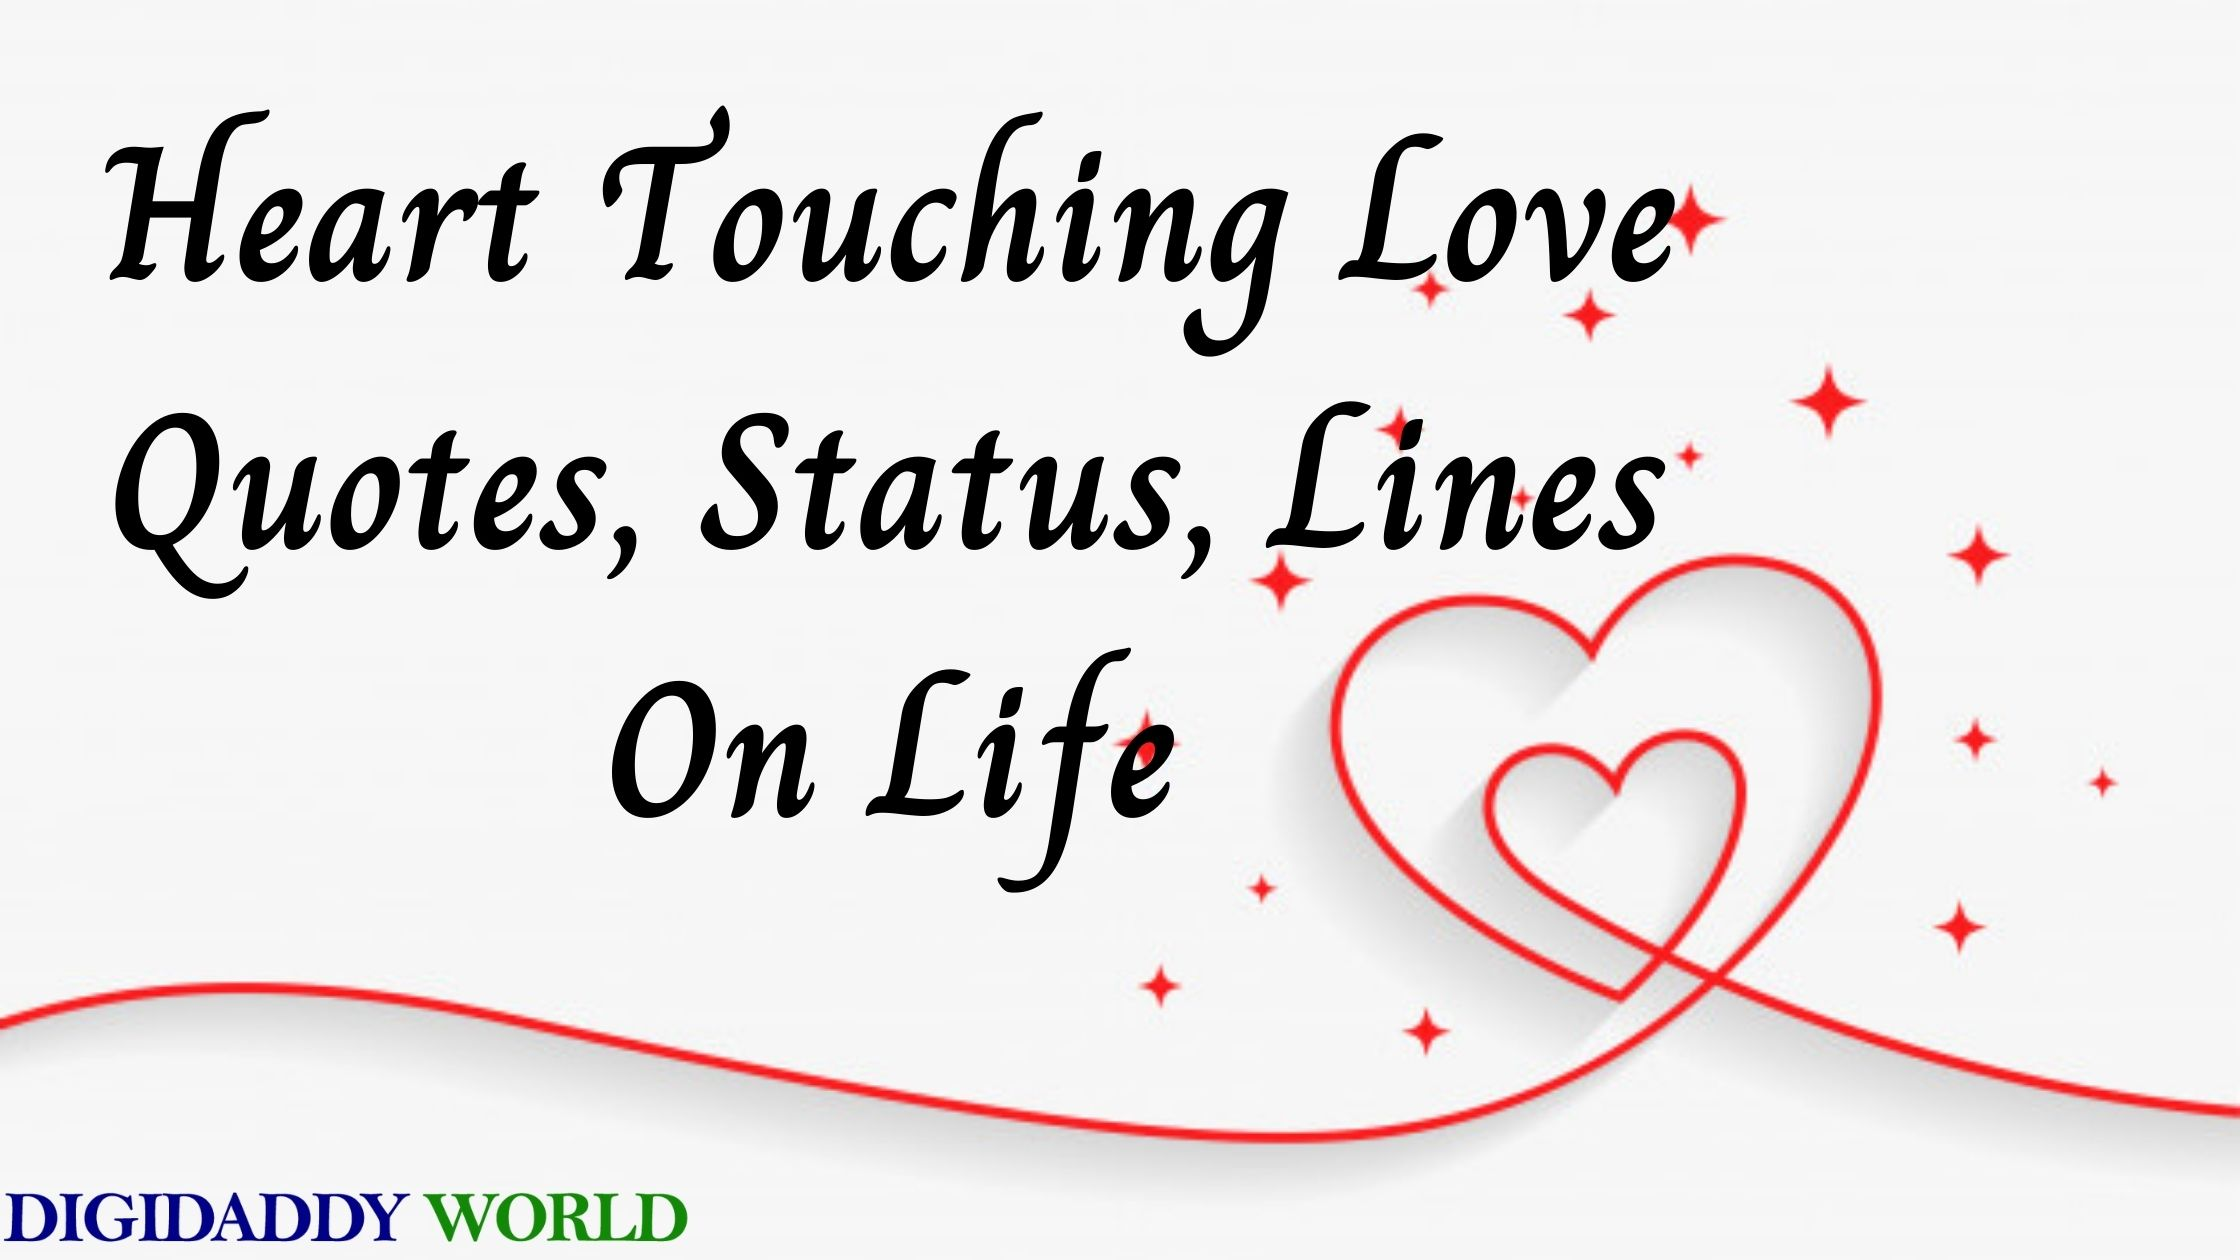 Heart Touching Love Quotes, Status, Lines On Life